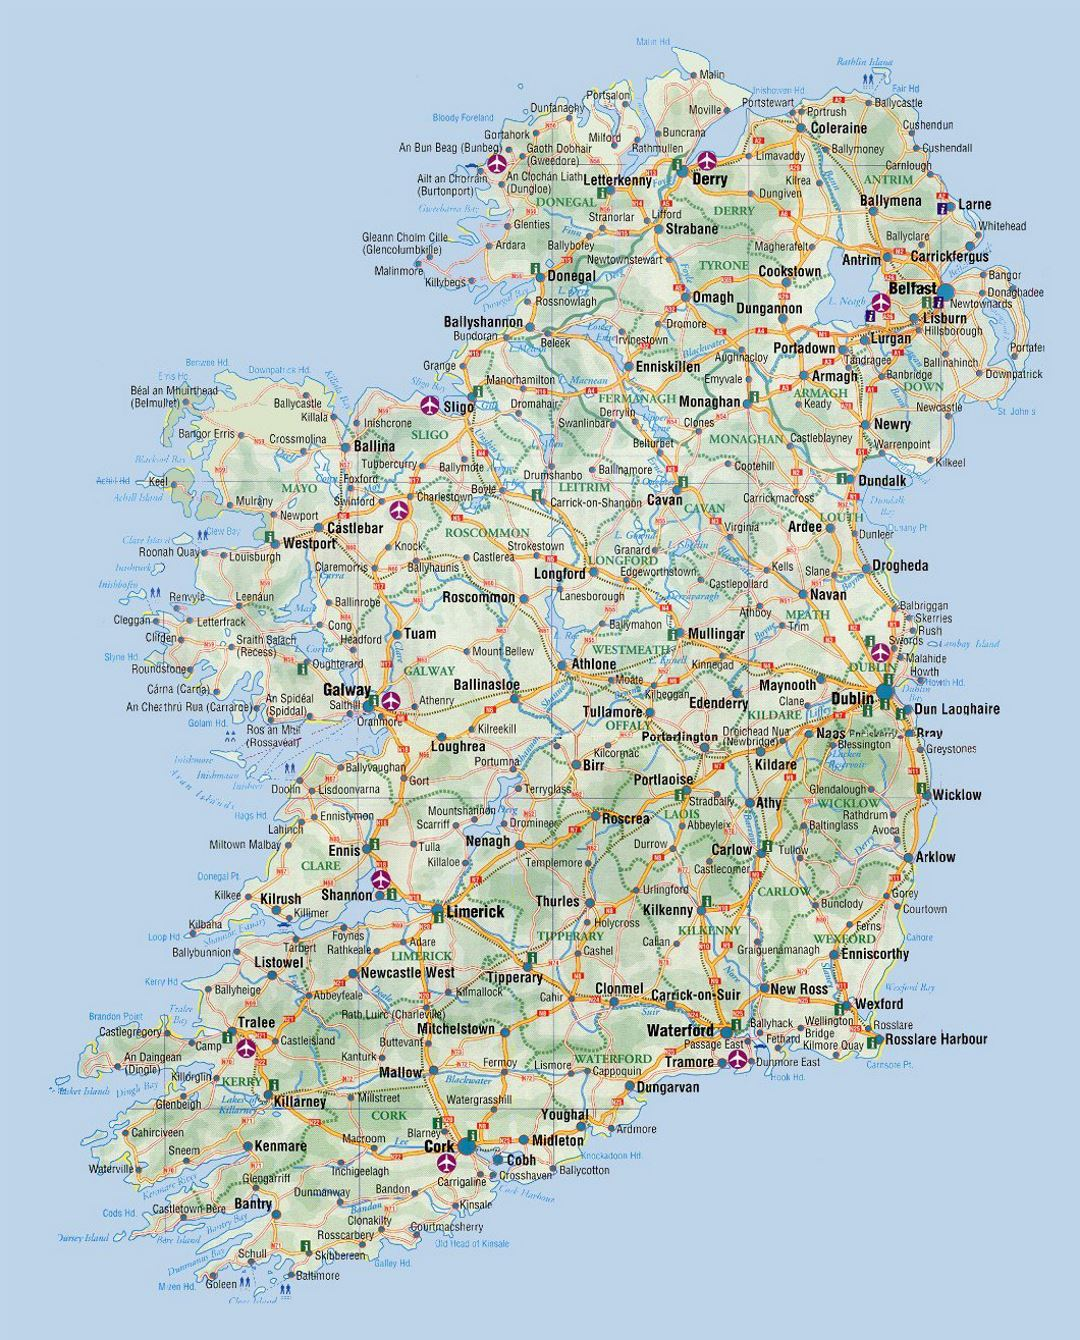 Map Of Ireland With Airports.Detailed Elevation And Road Map Of Ireland With Cities And Airports